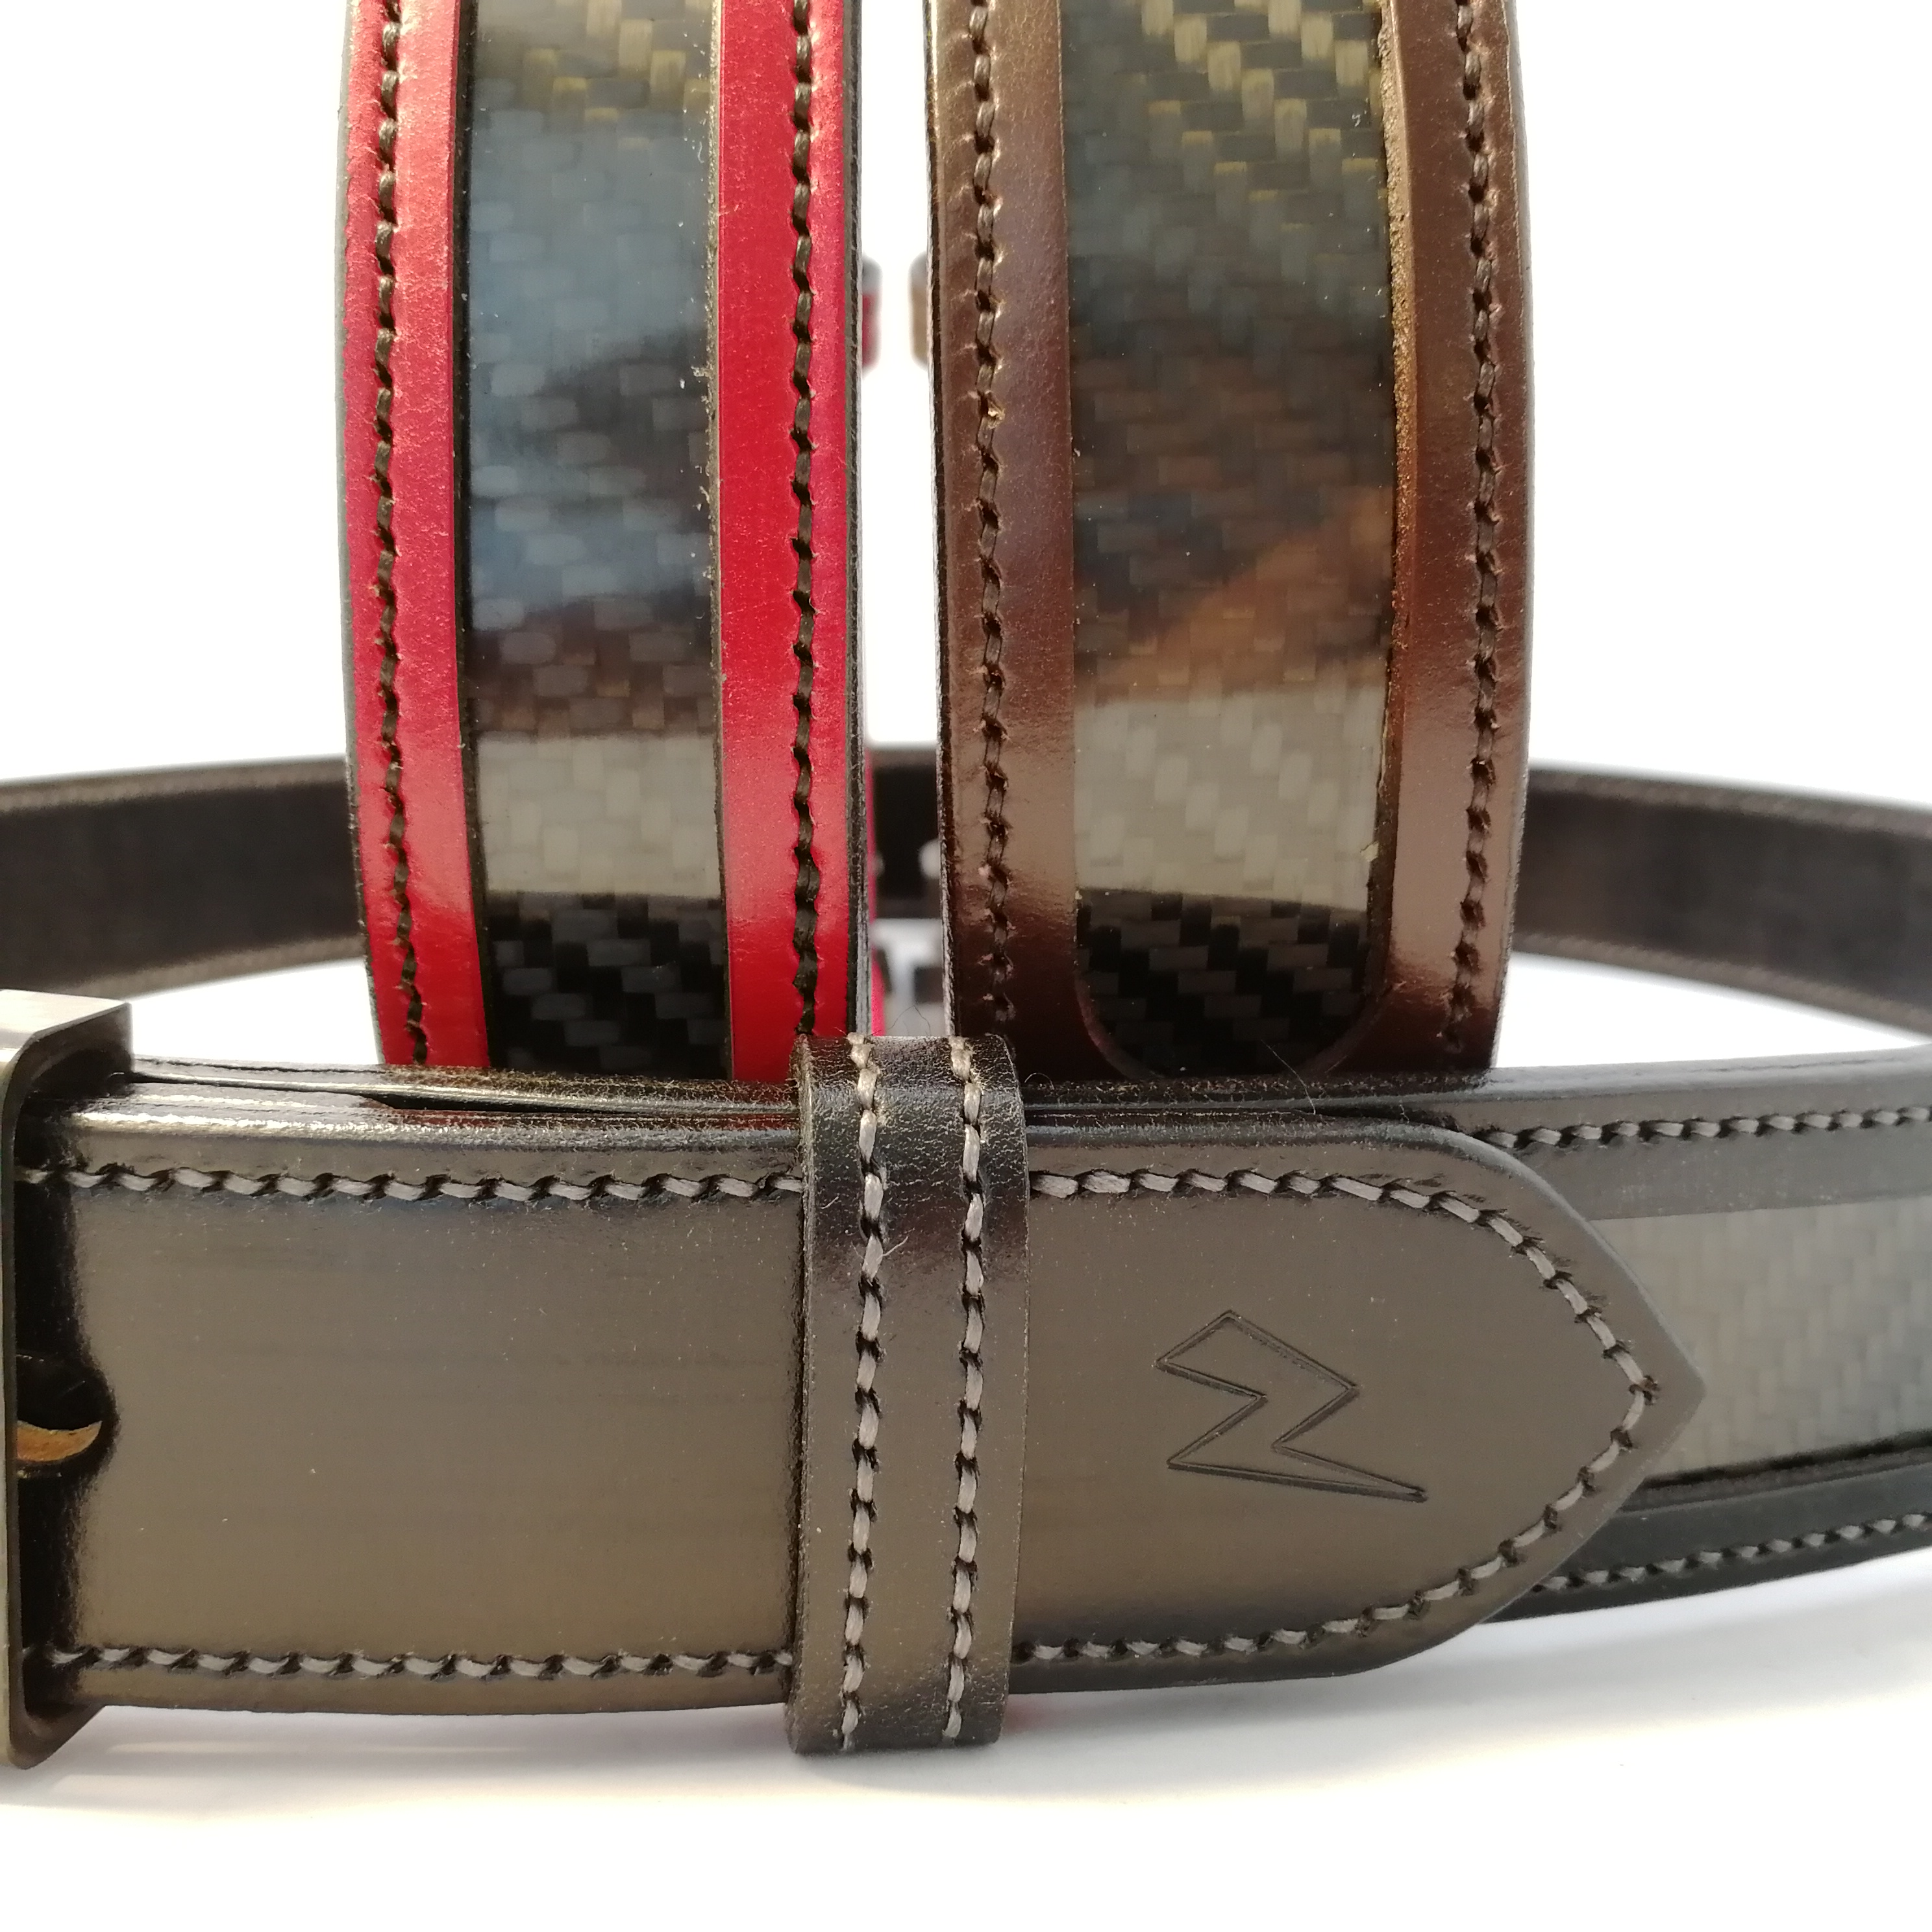 ZEEK® and TBM's Carbon Fibre and Leather Belts